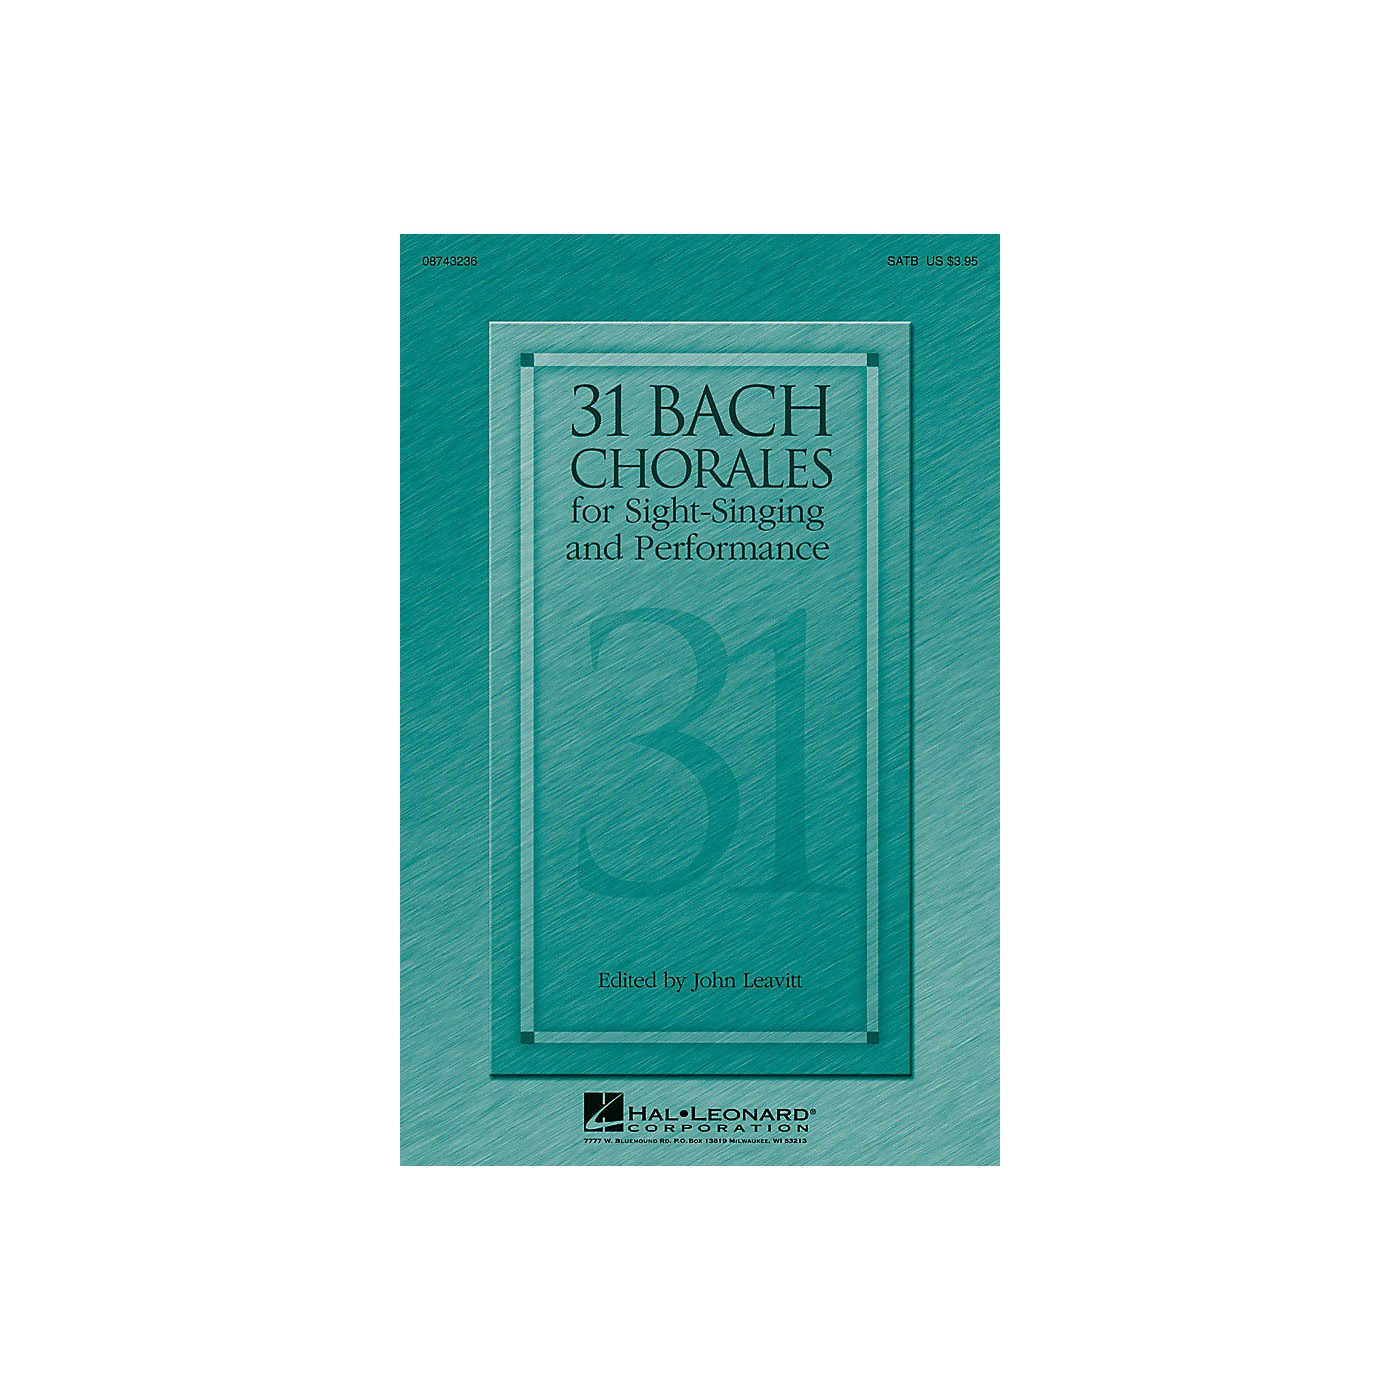 Hal Leonard 31 Bach Chorales for Sight-Singing and Performance SATB composed by J.S. Bach thumbnail